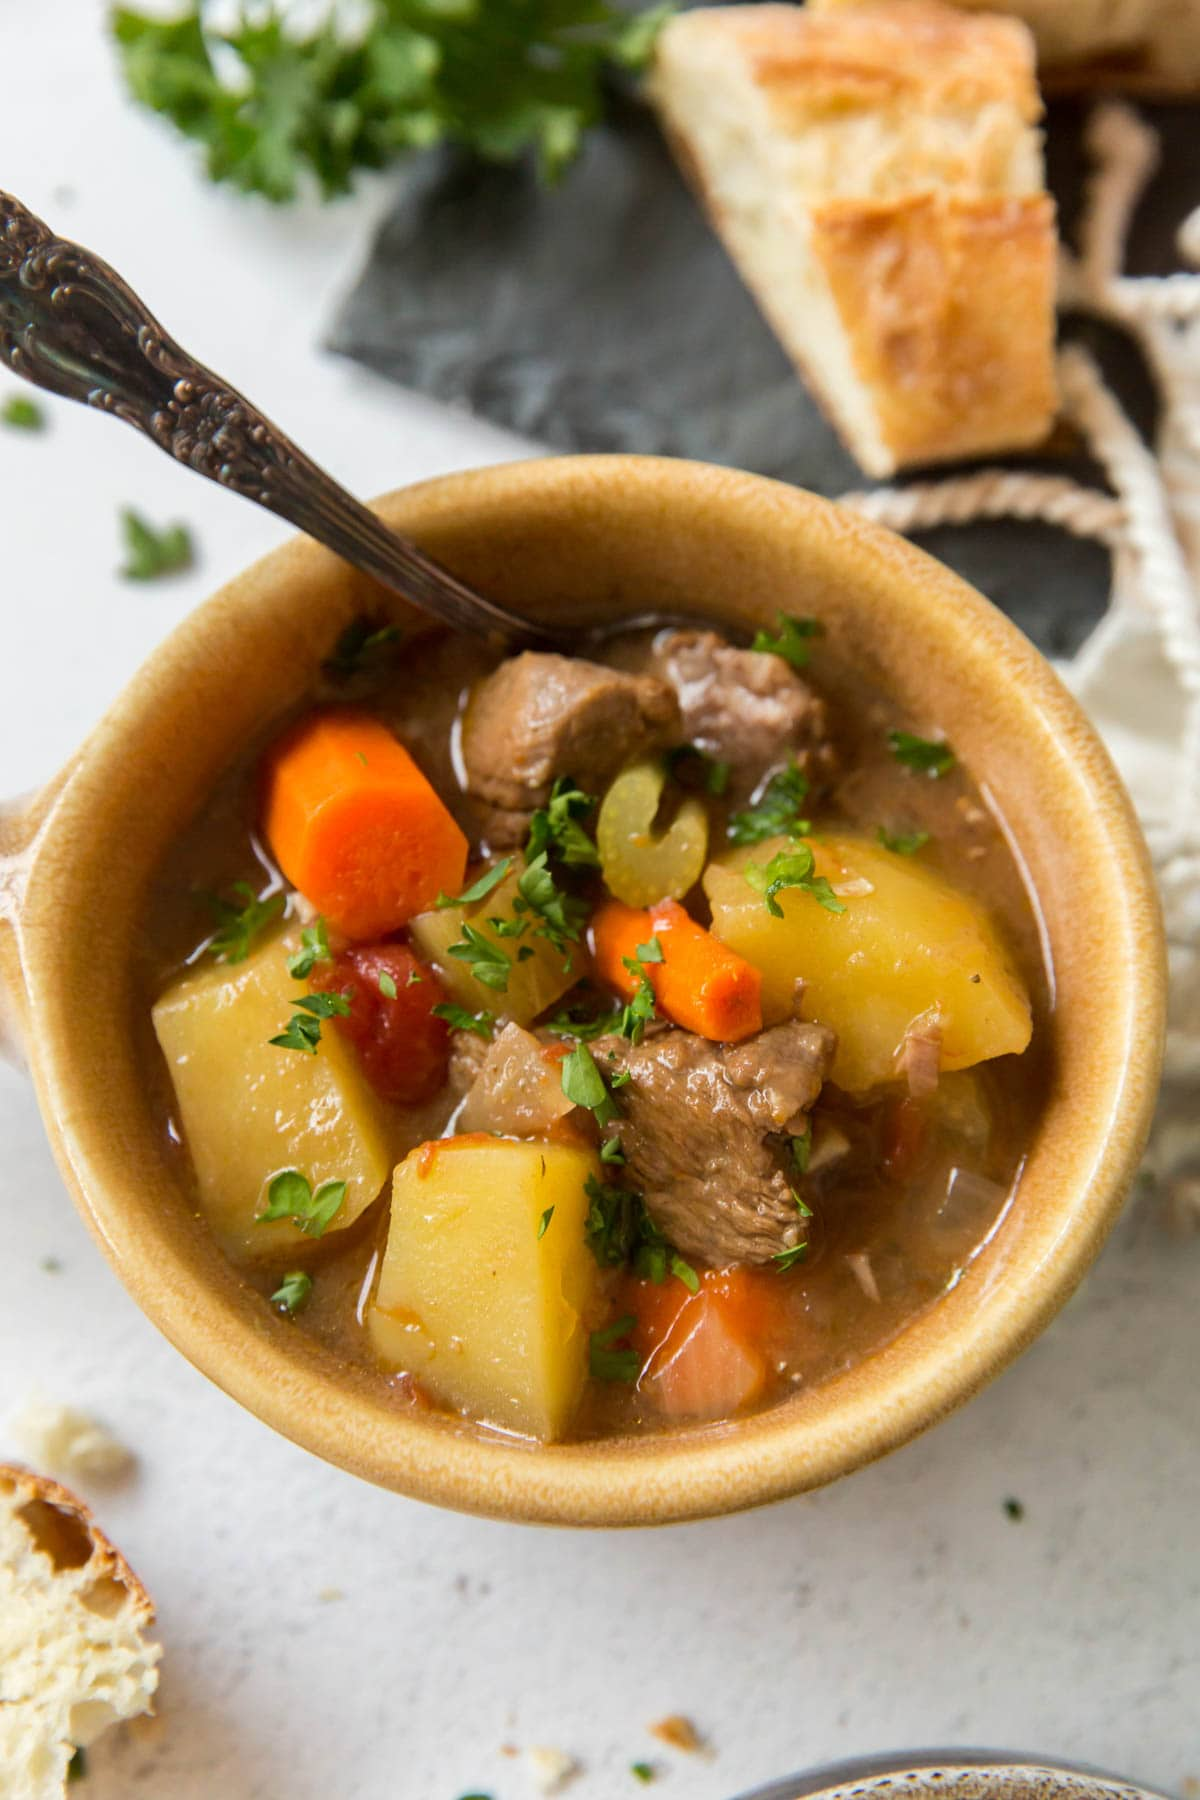 yellow bowl, spoon, parsley, bread, beef stew